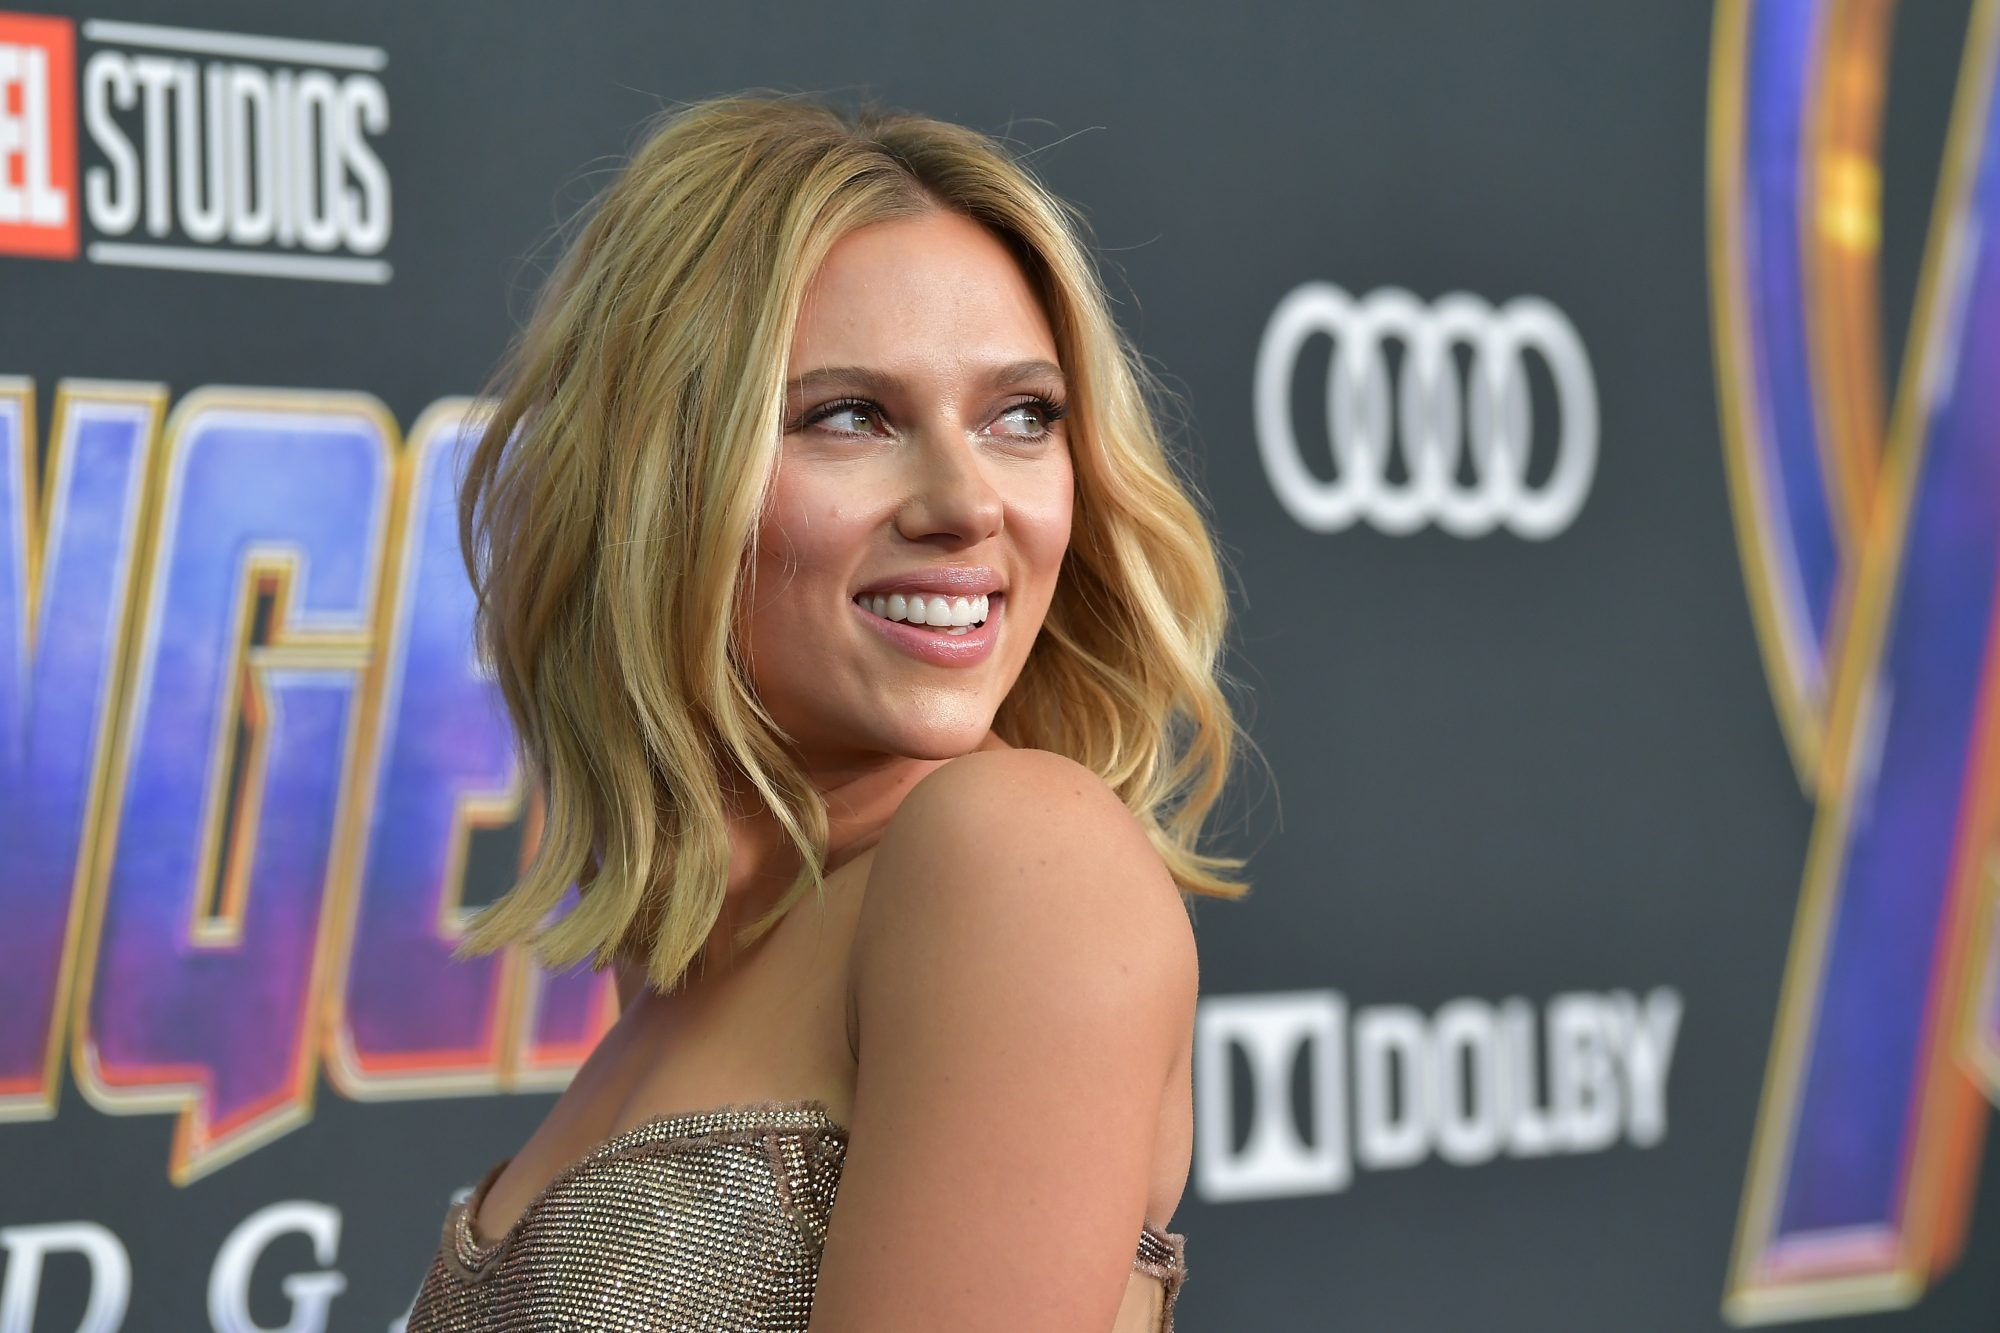 """Scarlett Johansson attends the world premiere of Walt Disney Studios Motion Pictures """"Avengers: Endgame"""" at the Los Angeles Convention Center on April 22, 2019 in Los Angeles, California.  (Photo by Amy Sussman/Getty Images)"""